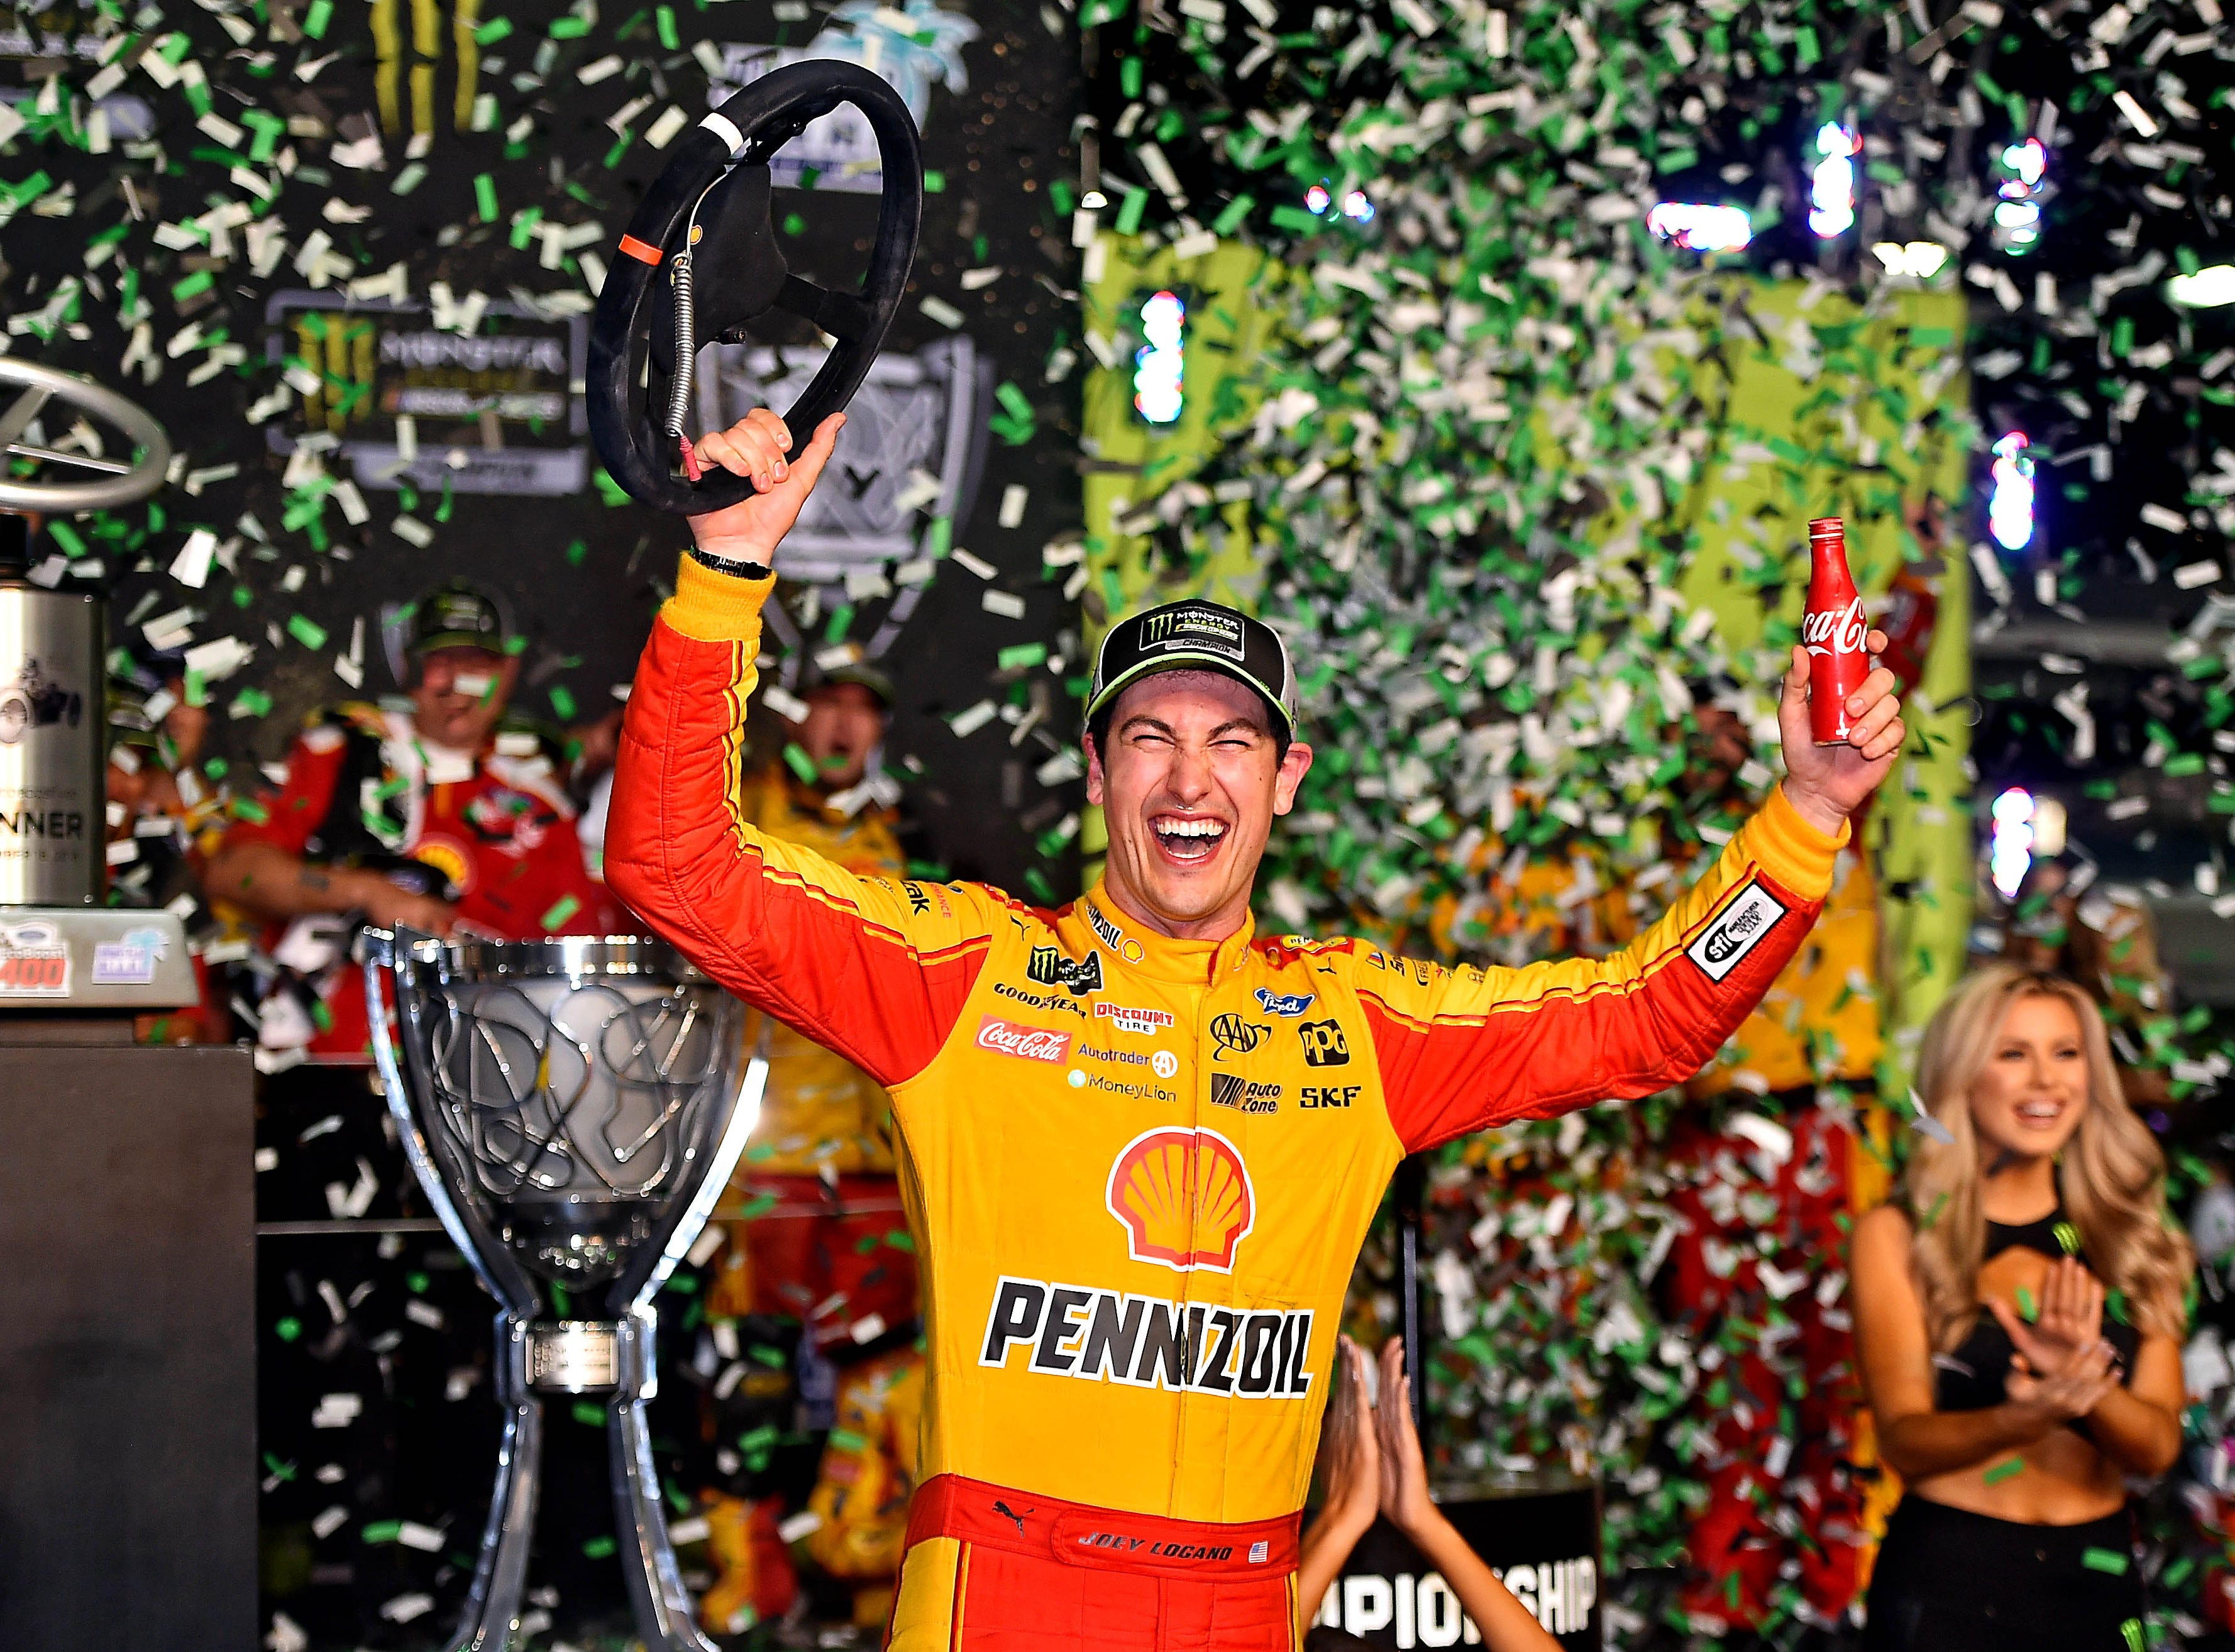 Joey Logano poses for photos after winning the NASCAR Cup Series championship at Homestead-Miami Speedway.